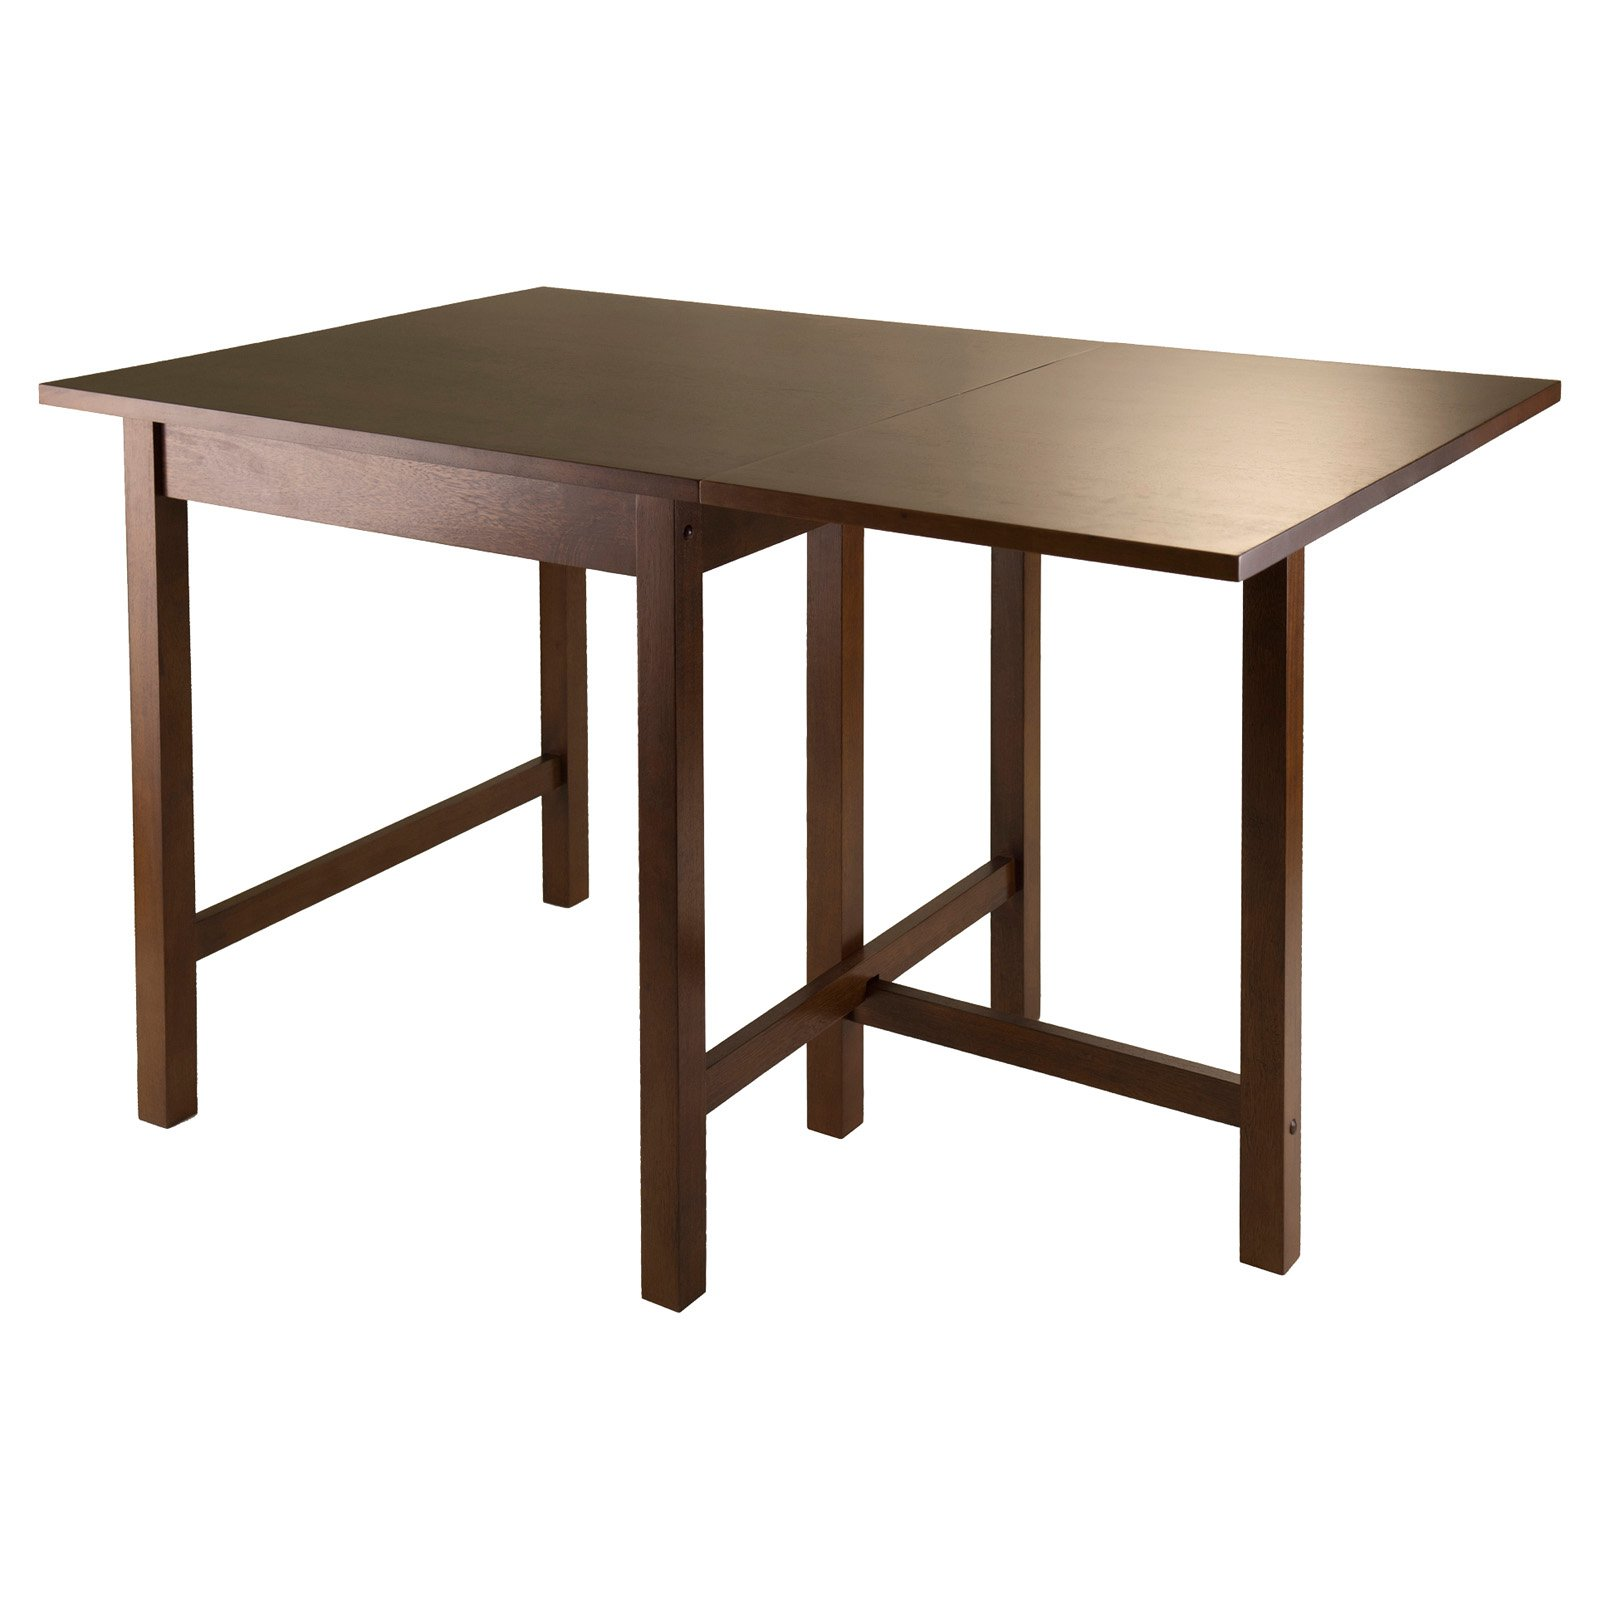 Winsome Lynden 3 Piece Dining Set With Drop Leaf Table, Antique Walnut    Walmart.com